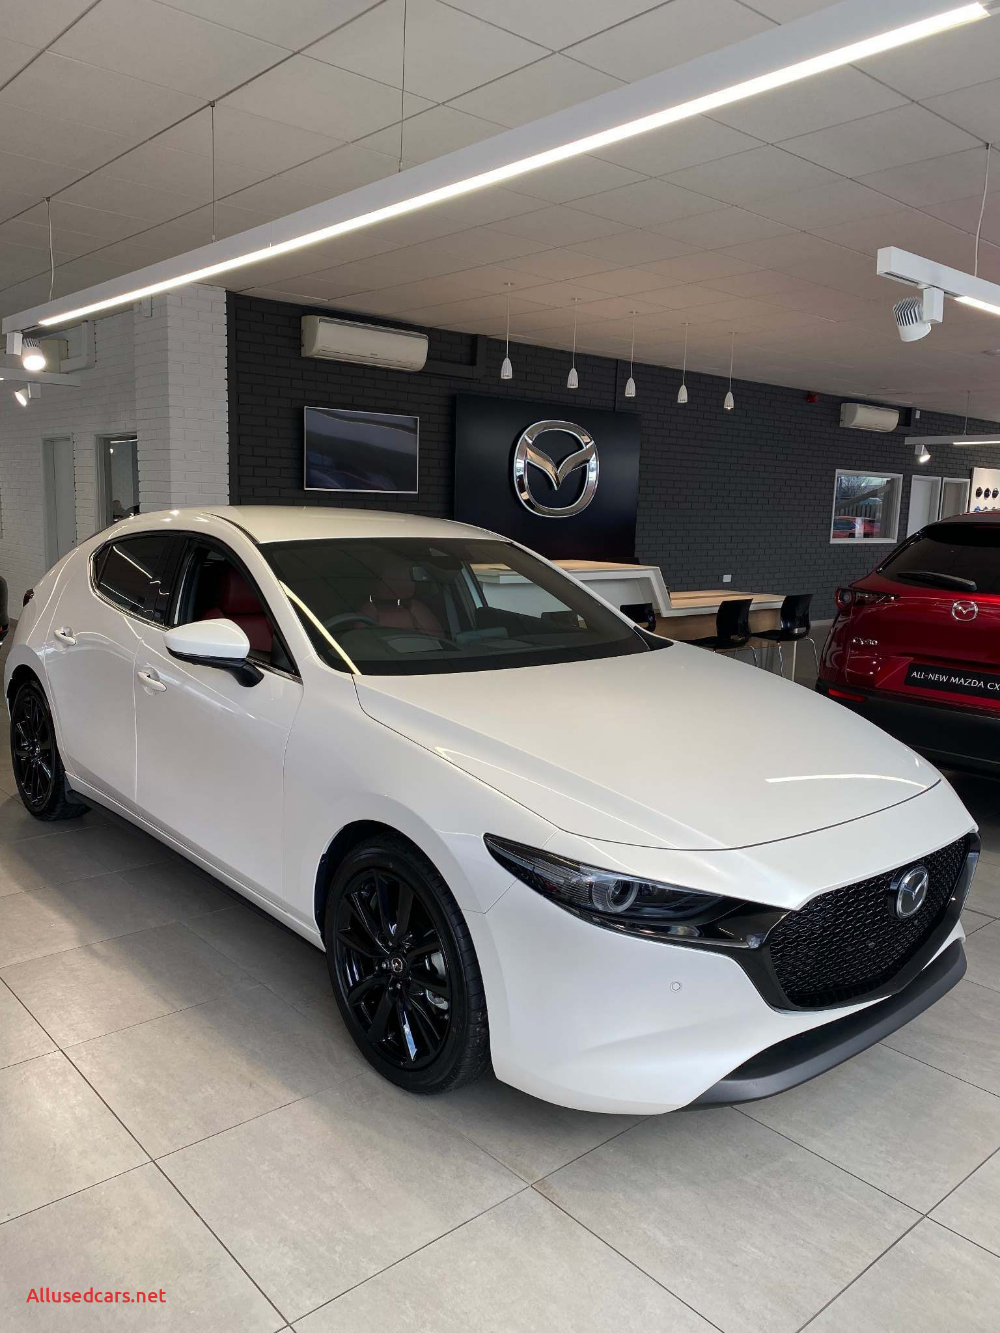 Used Mazda 3 Beautiful Bmw Used Cars for Sale In Cwmbran